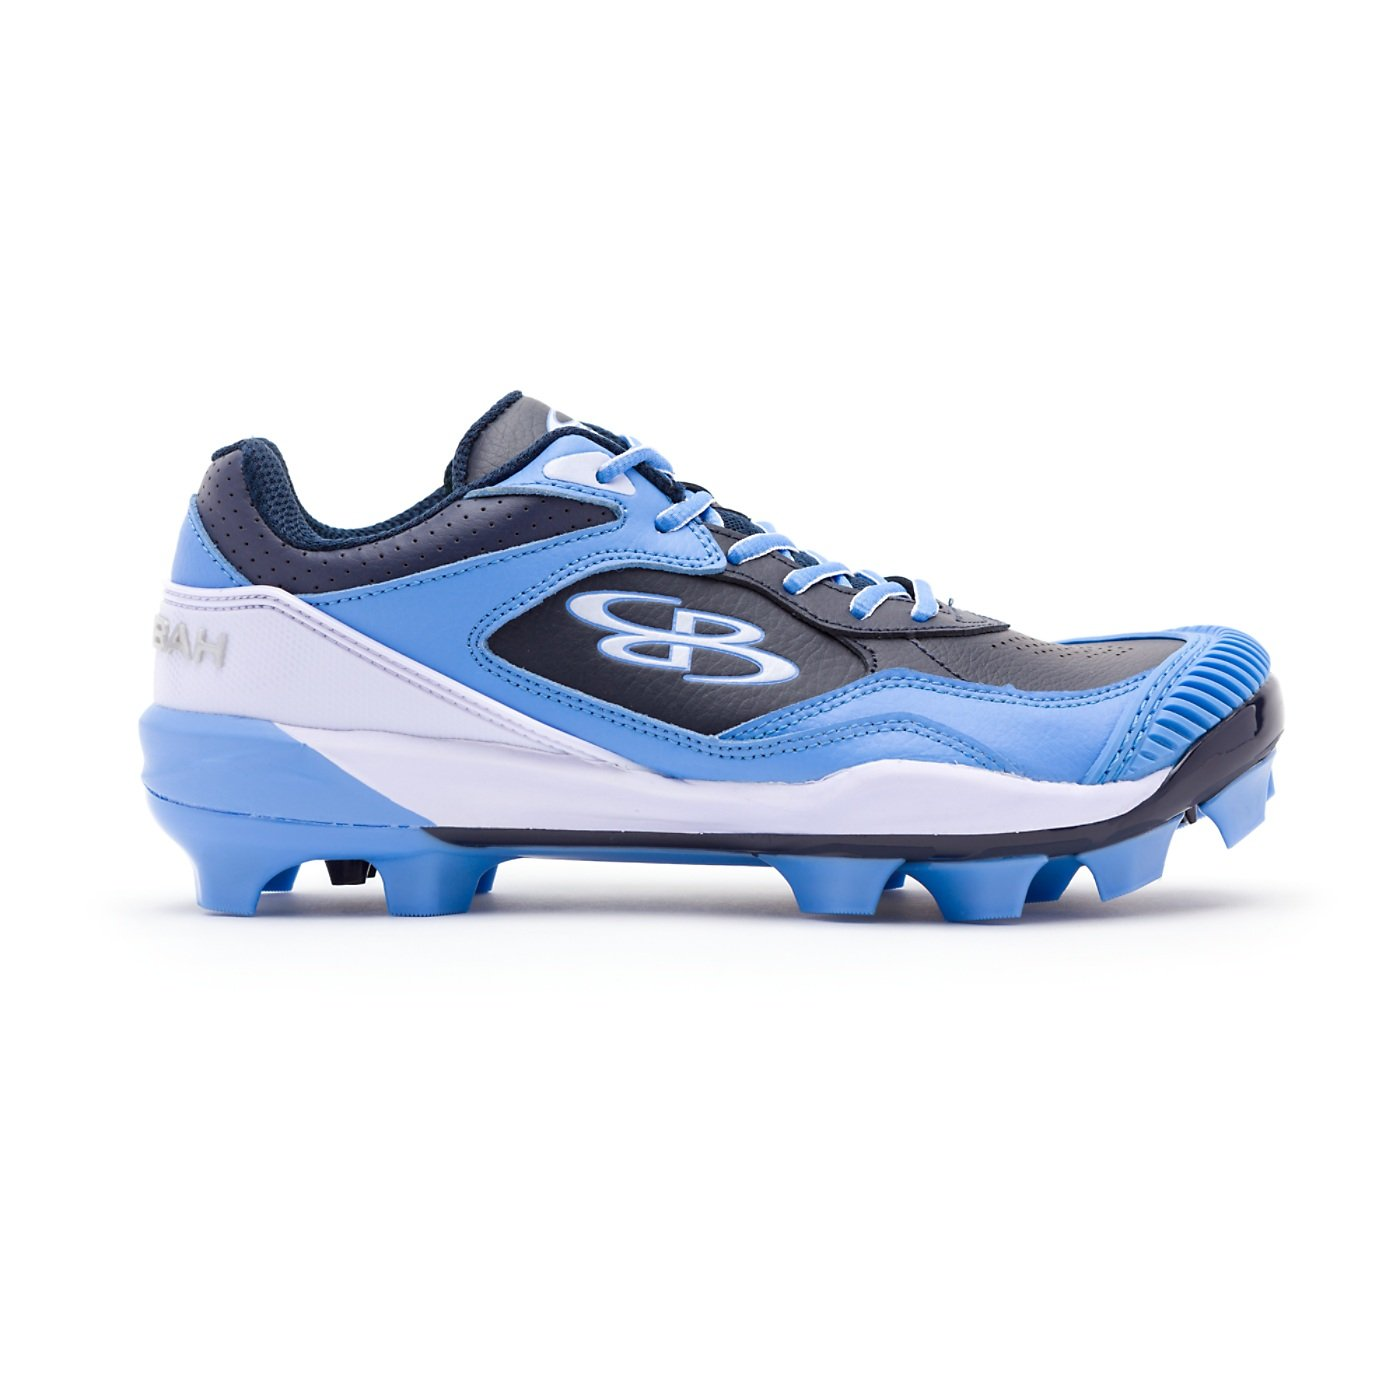 Boombah Women's Endura Pitcher's Toe Molded Cleats Navy/Columbia Blue - Size 7 by Boombah